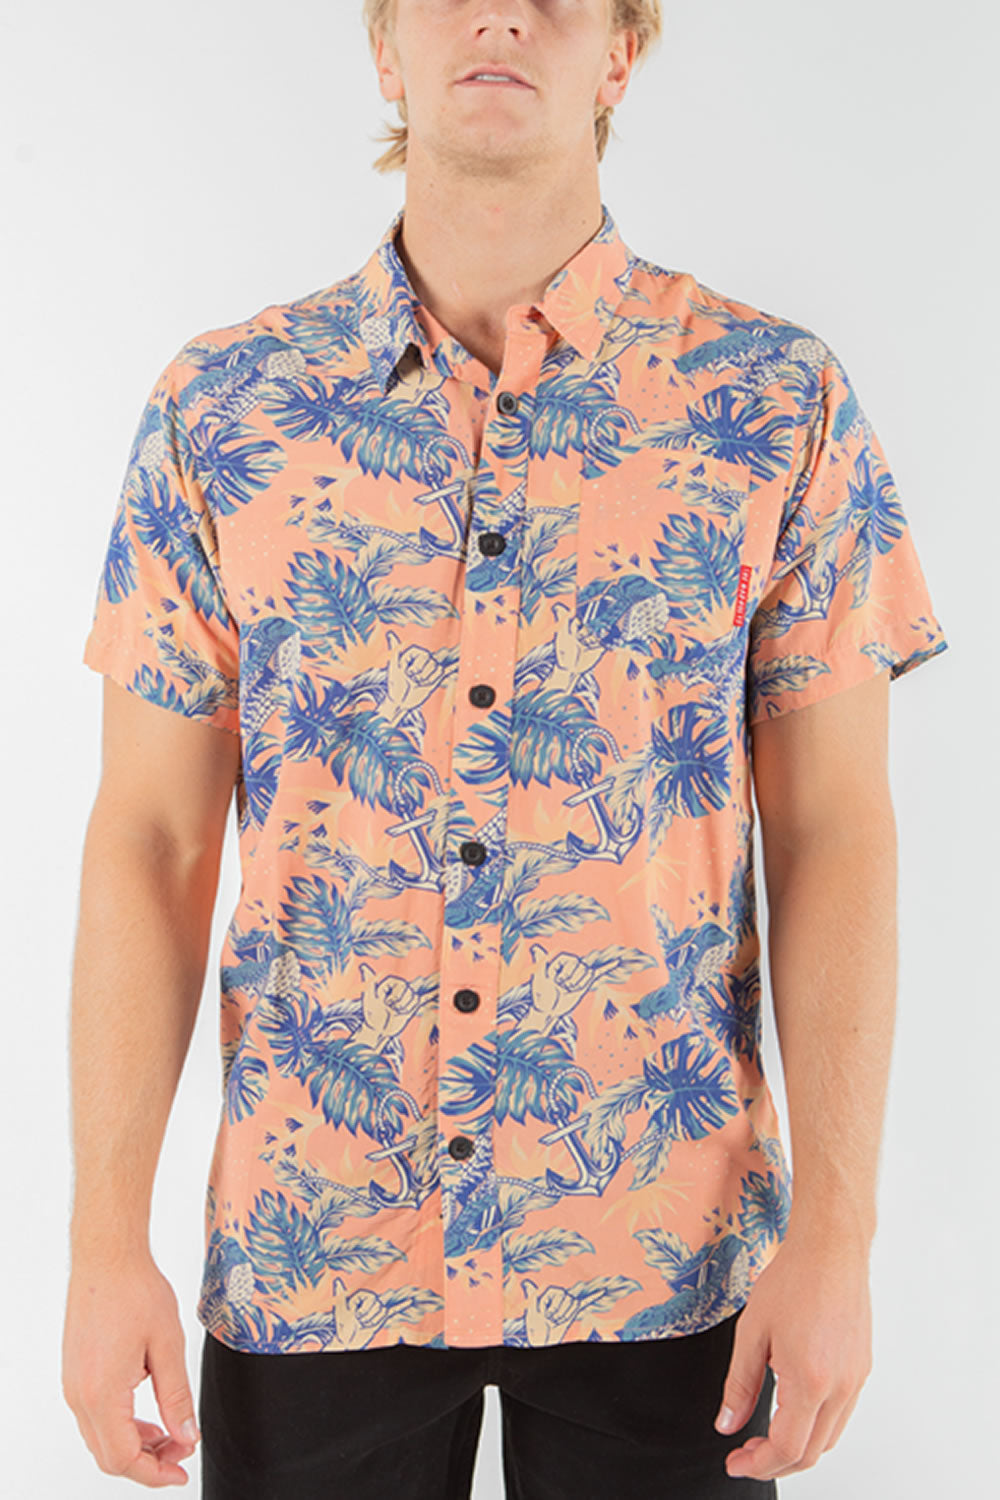 The Mad Hueys Big Croc Short Sleeve Shirt